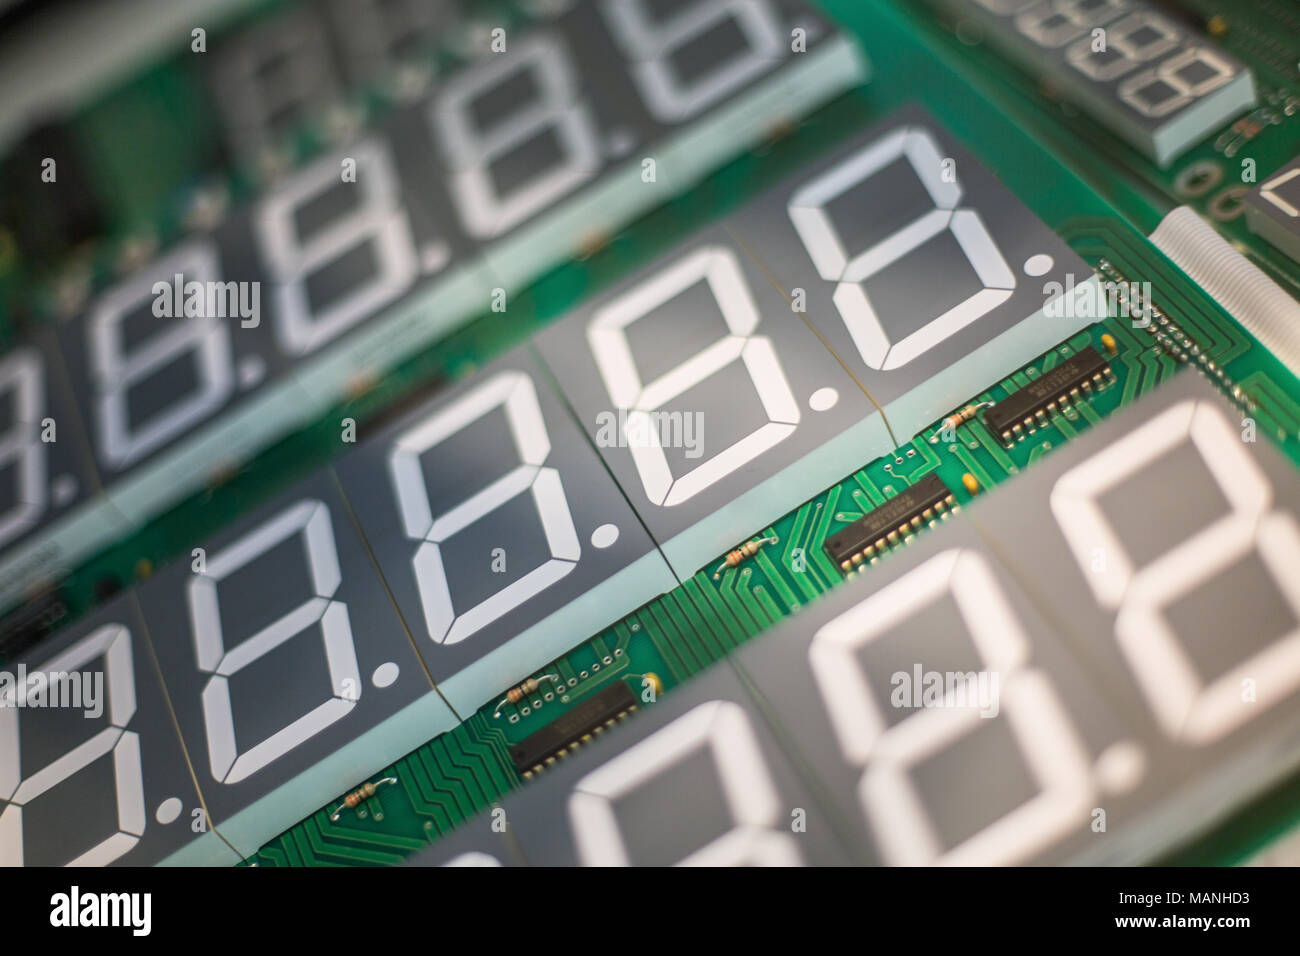 Circuit Board Digital Display Wiring Diagram For Professional Logic 7 Segment Electronic Components With Stock Rh Alamy Com Counter